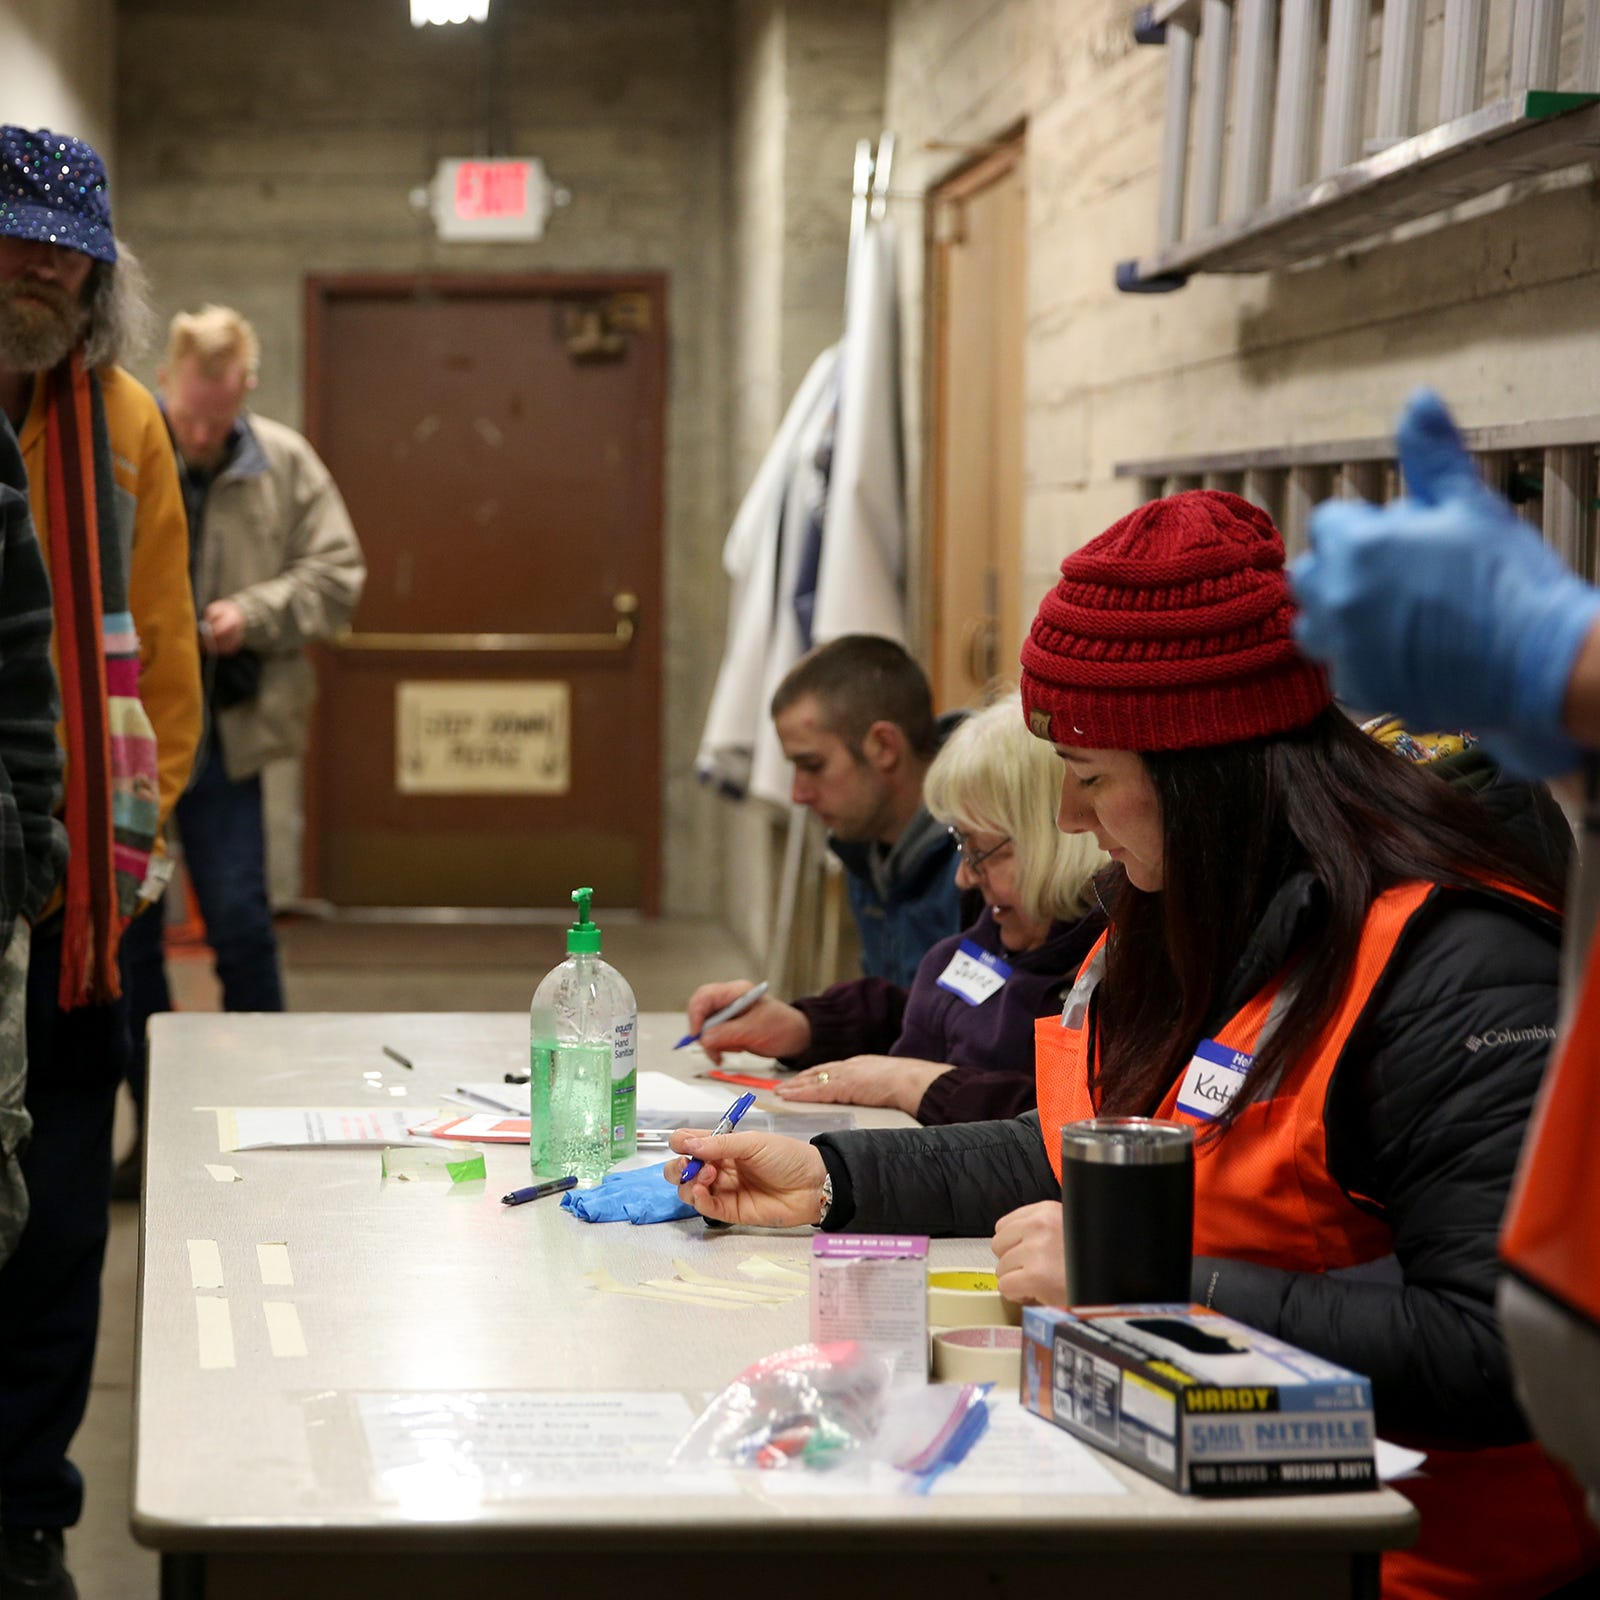 These are the people I've met while volunteering three winters at Salem's warming shelters